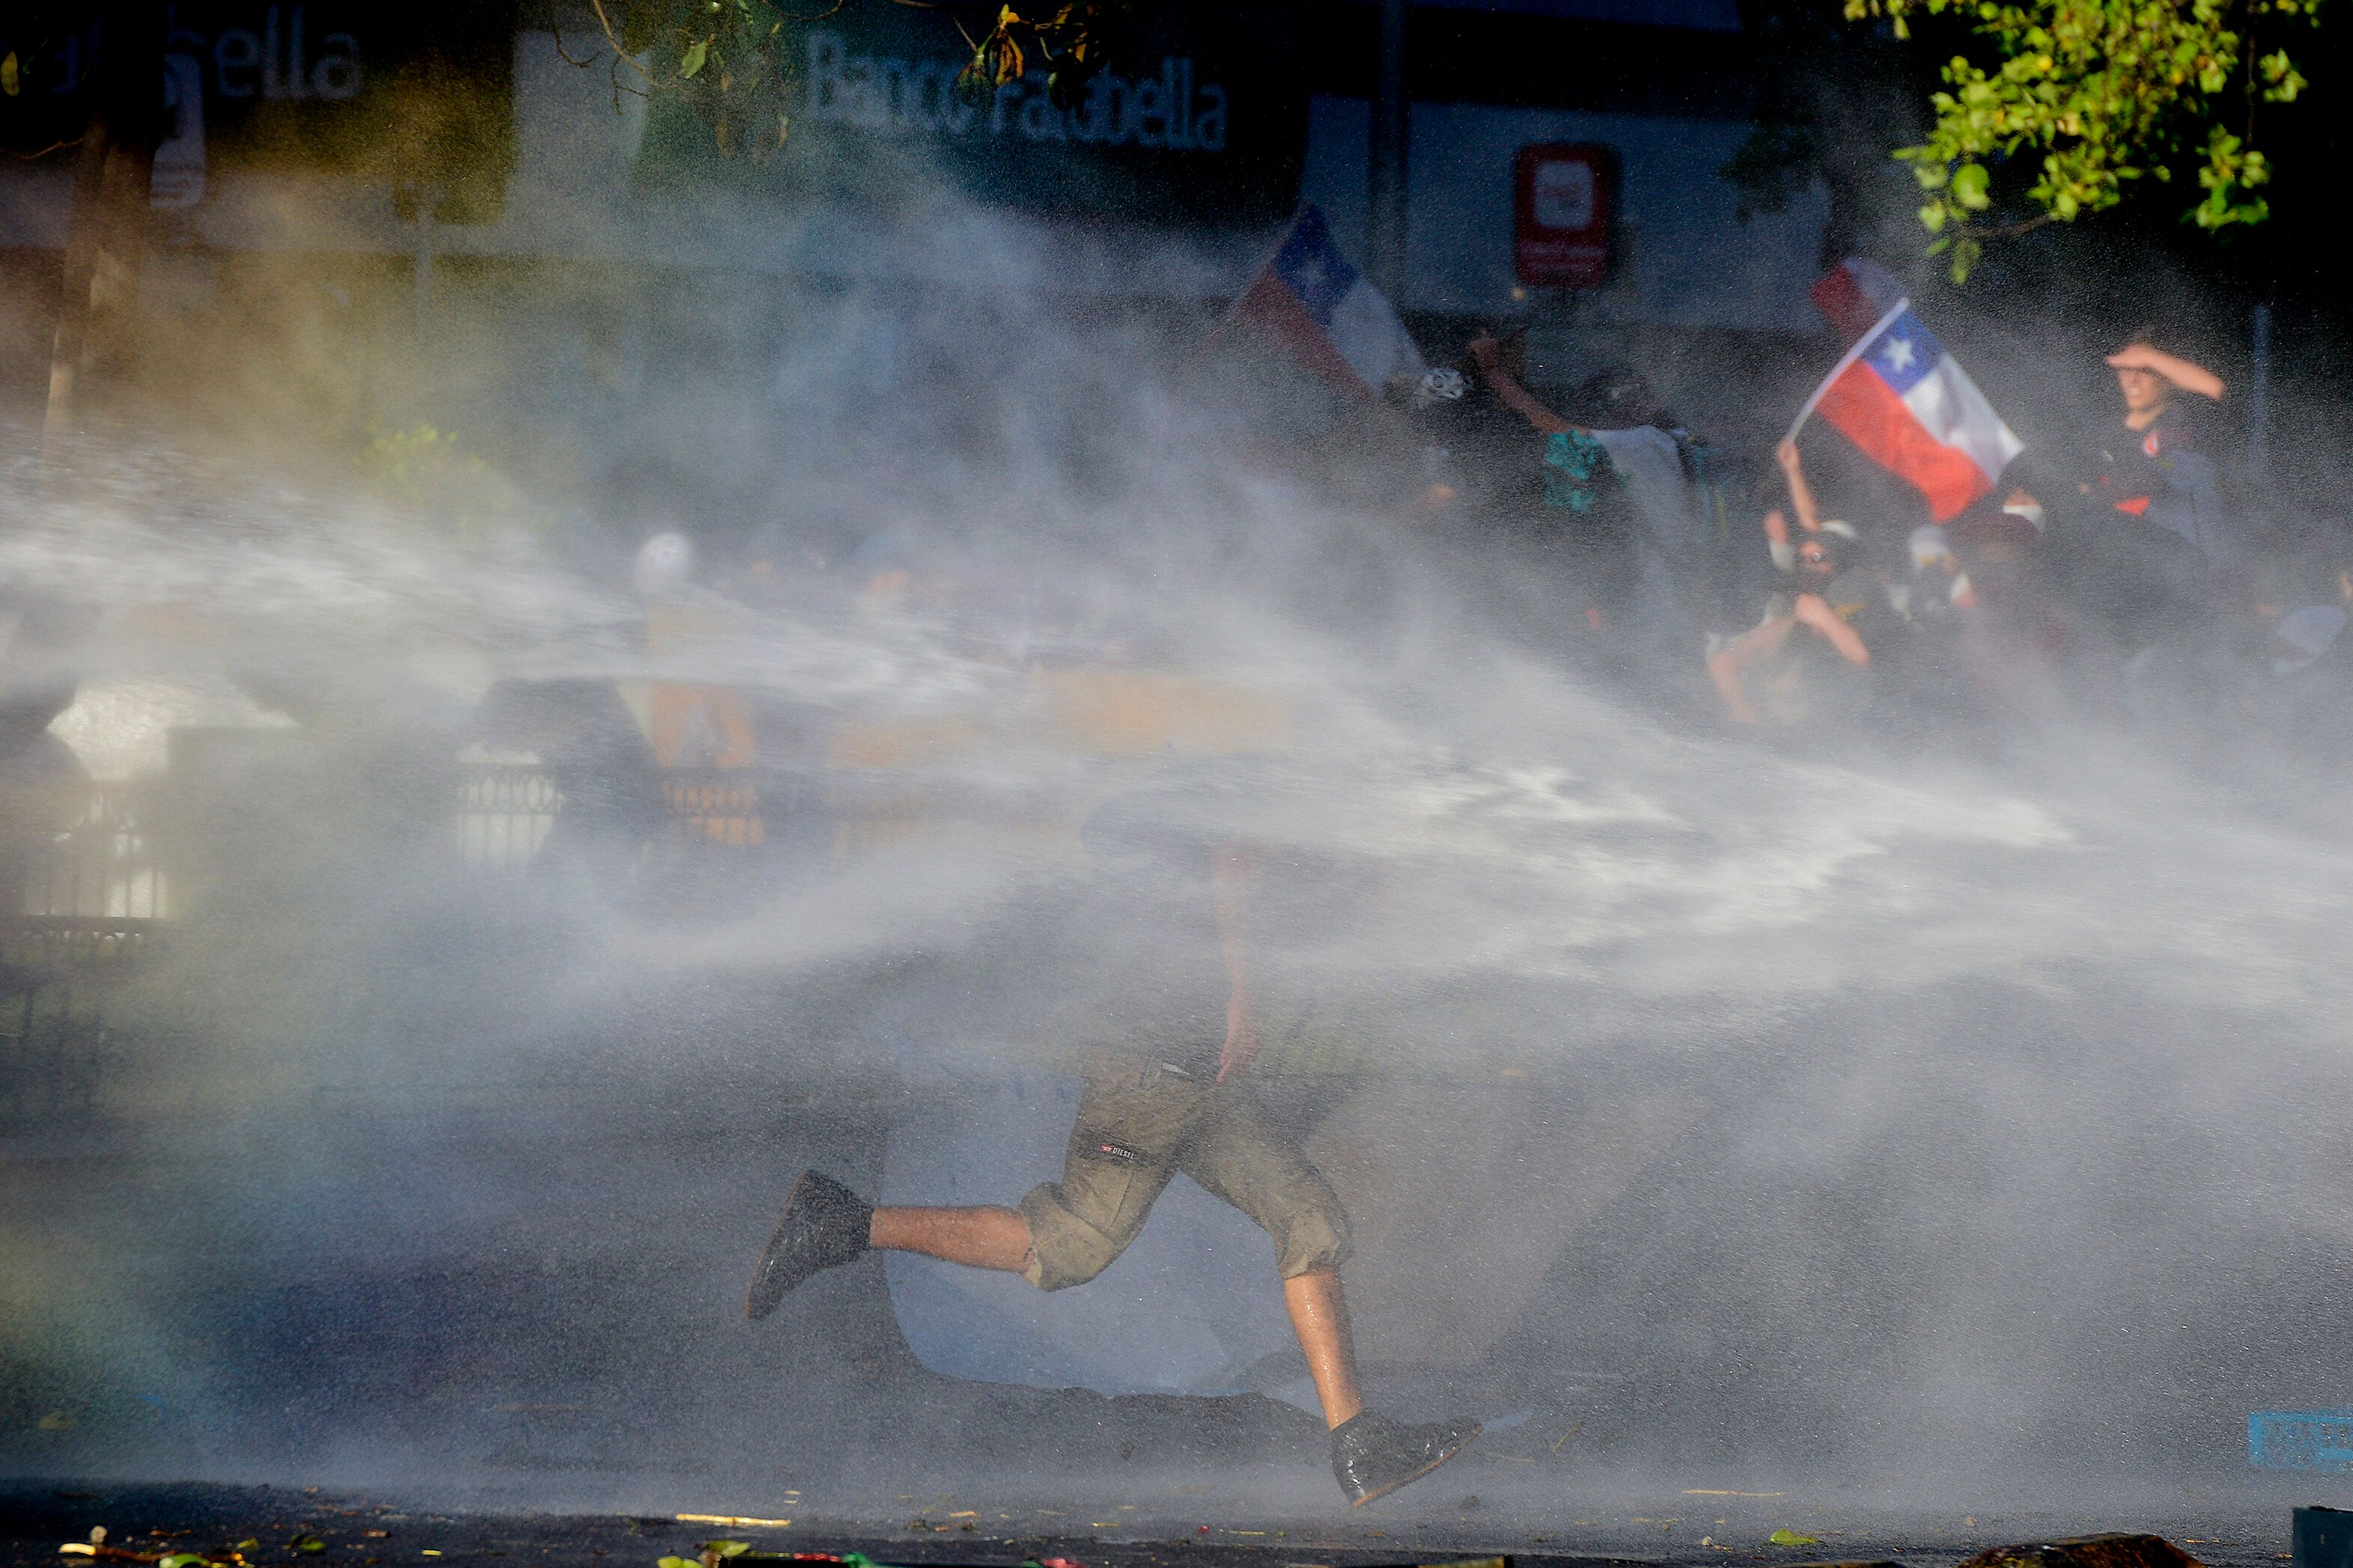 An anti-government protester runs through spray coming from a police water cannon in Santiago, Chile, on Oct. 28, 2019.